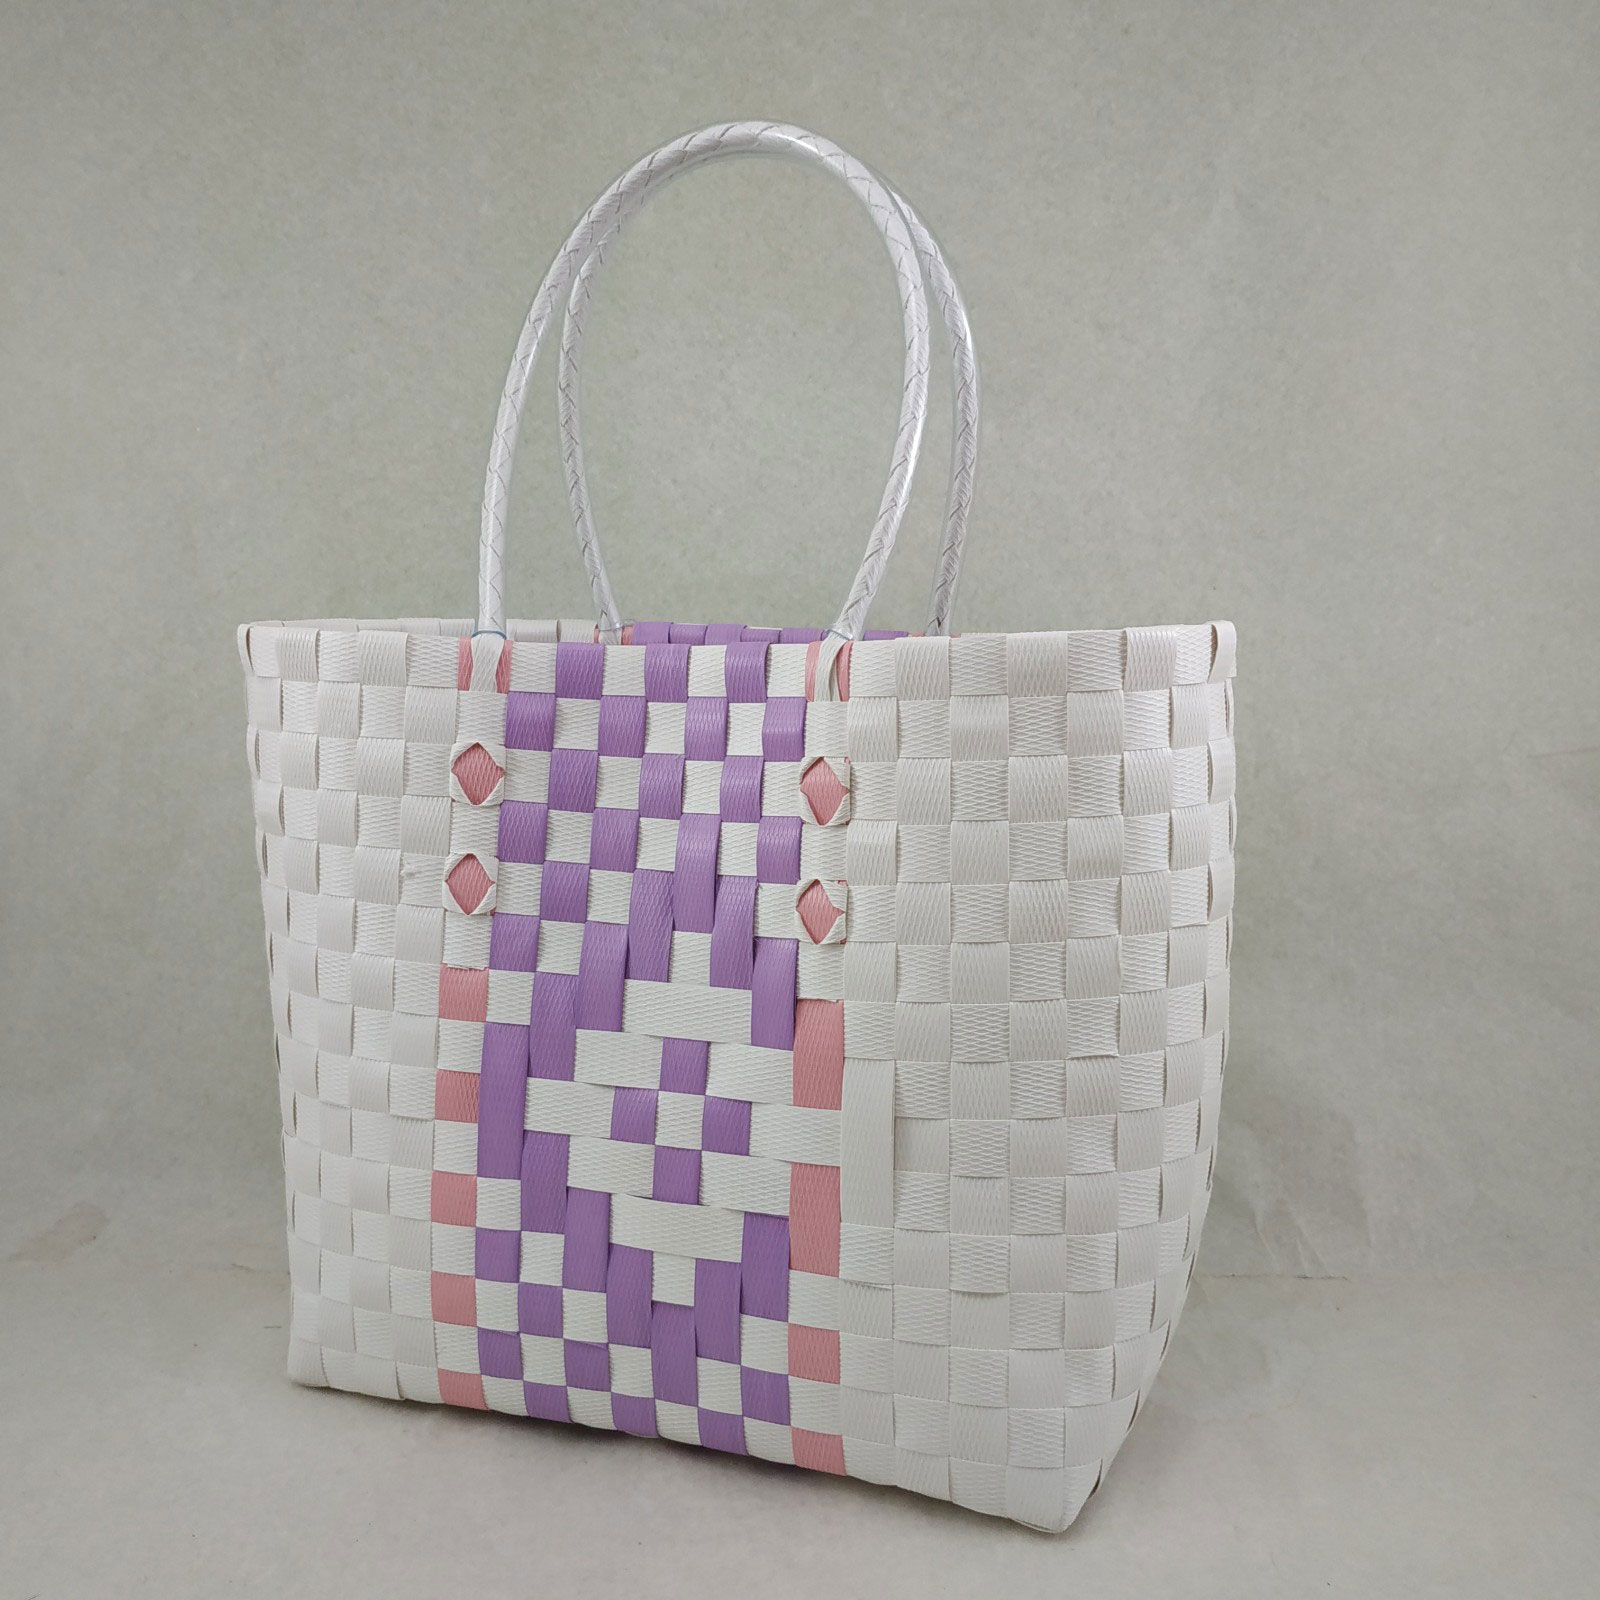 Tote Bag: White, Pink & Purple